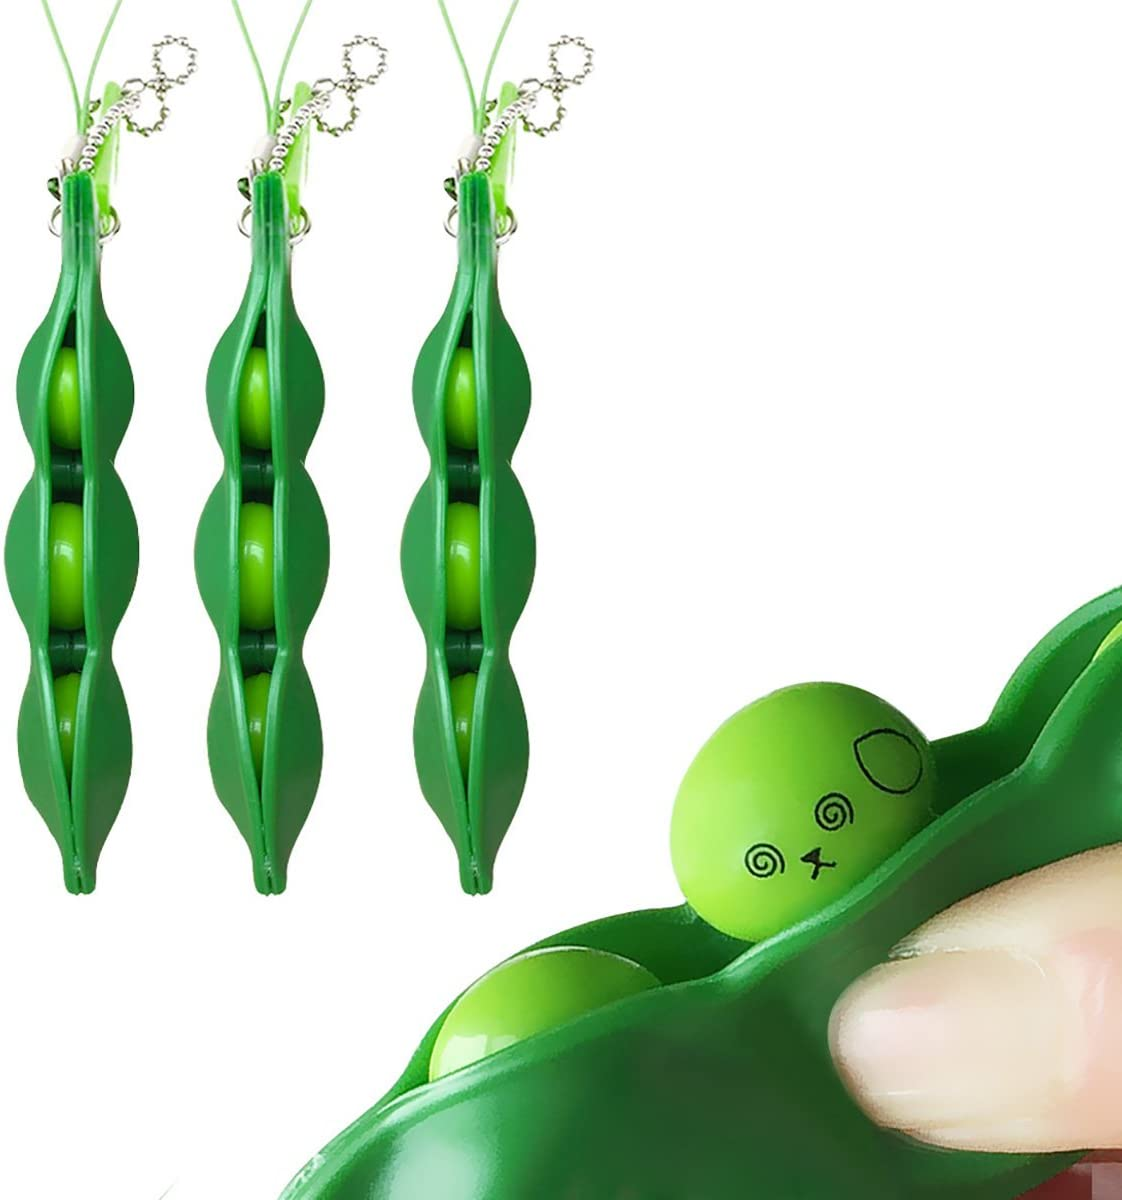 Acerich 3 Pack Edamame Keychain Fidget Toys - Squeeze-a-Bean Puchi Puti Mugen Keyring Pea Keychain Soybean Toys Gift